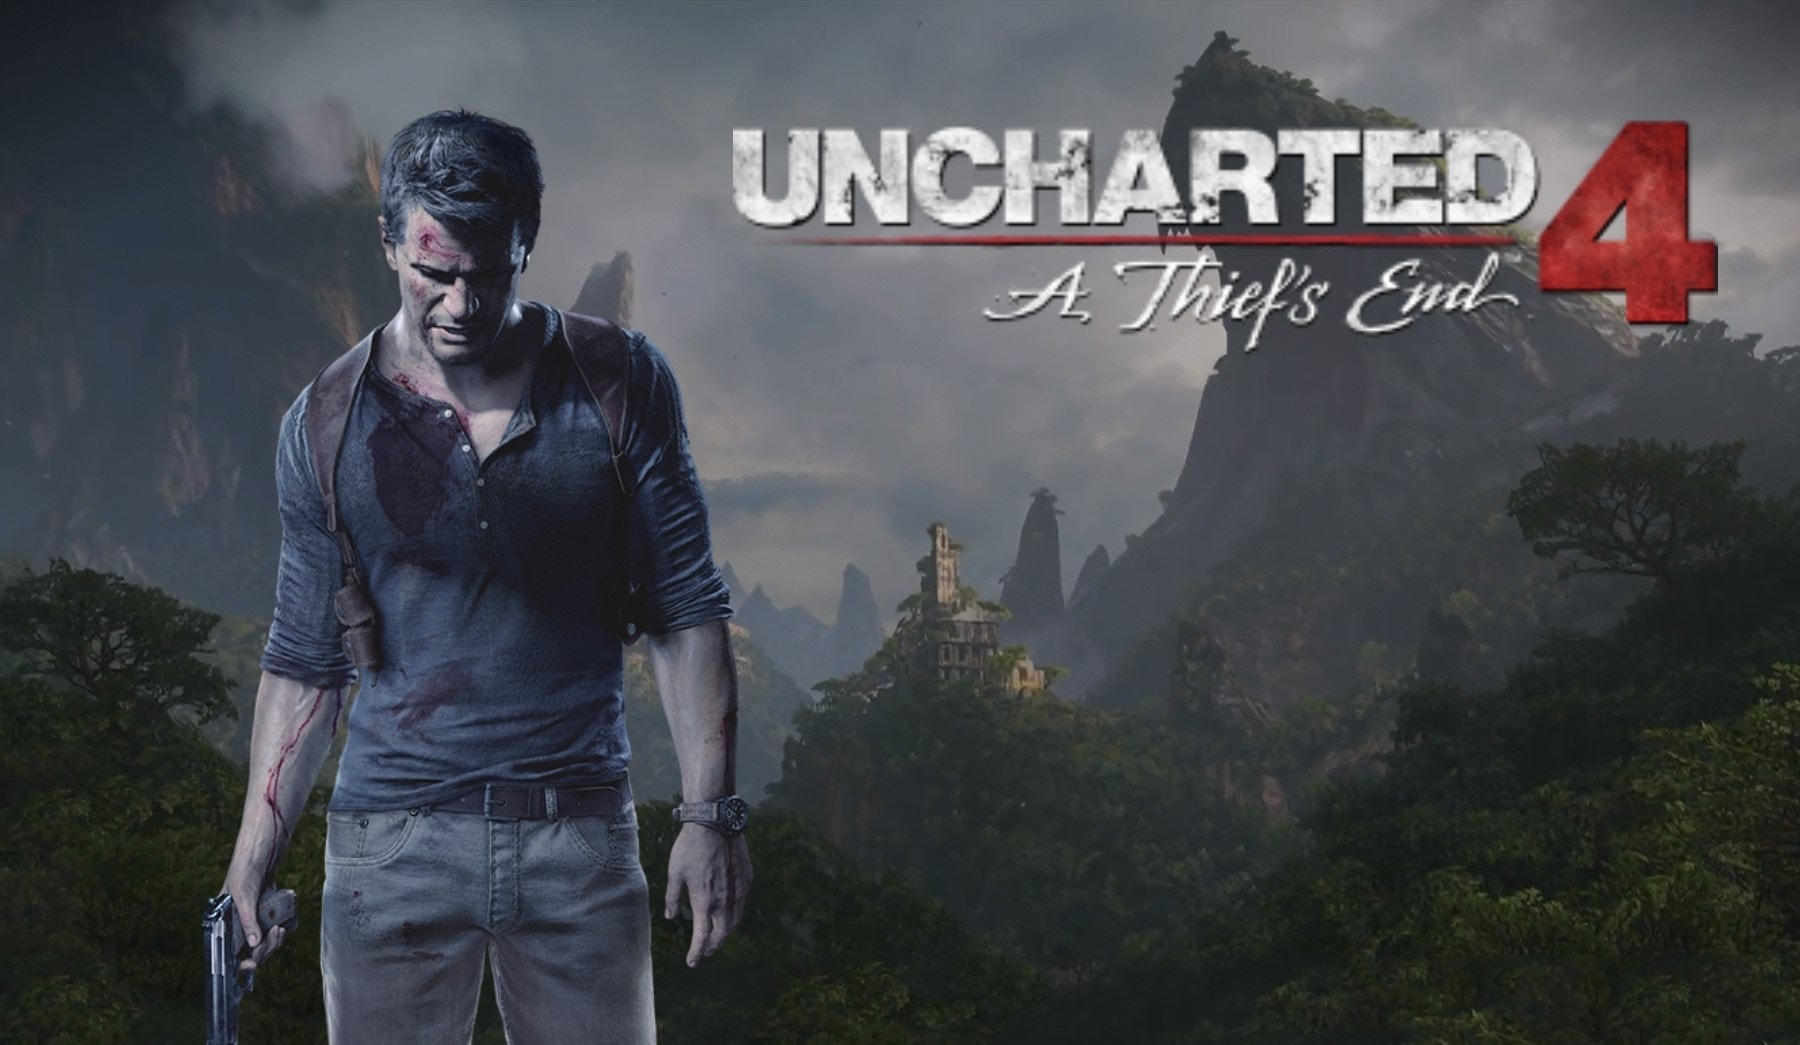 Uncharted 4: A Thiefs End - Single player games